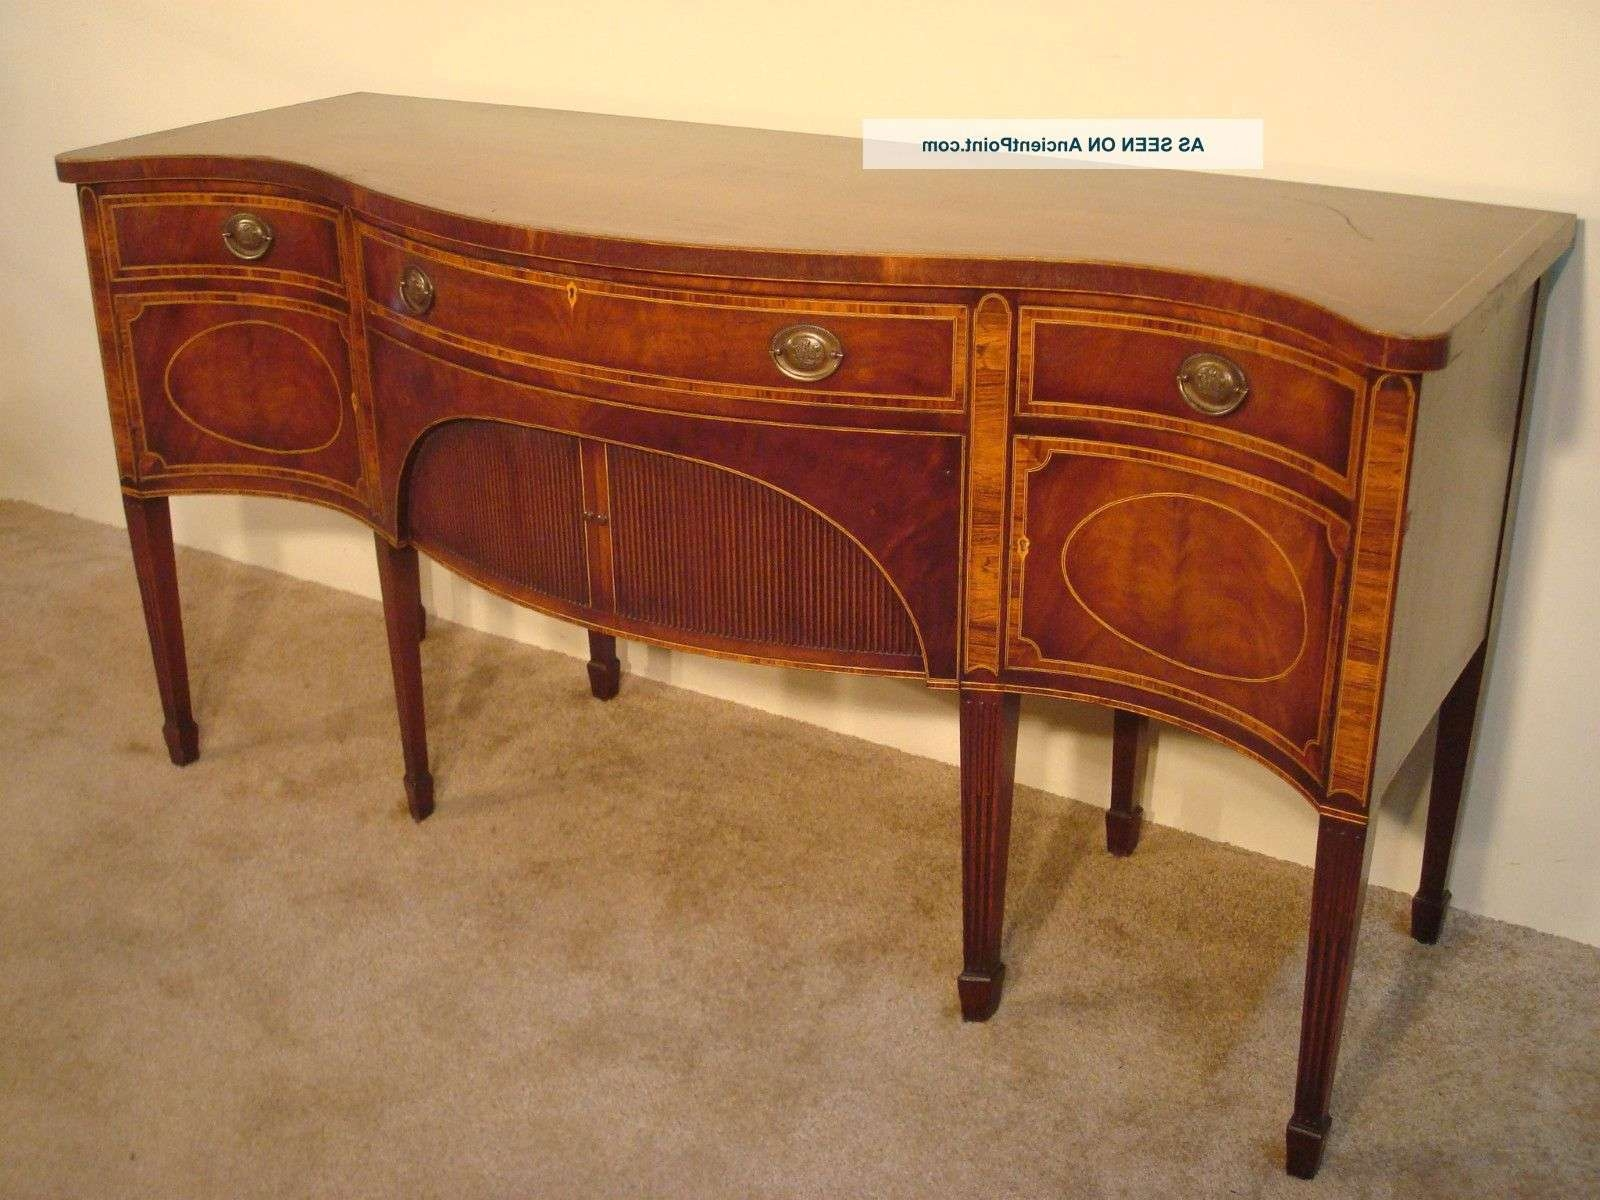 Antique Baker Furniture Company Inlaid Mahogany 8 – Leg Intended For Hepplewhite Sideboards (View 2 of 20)